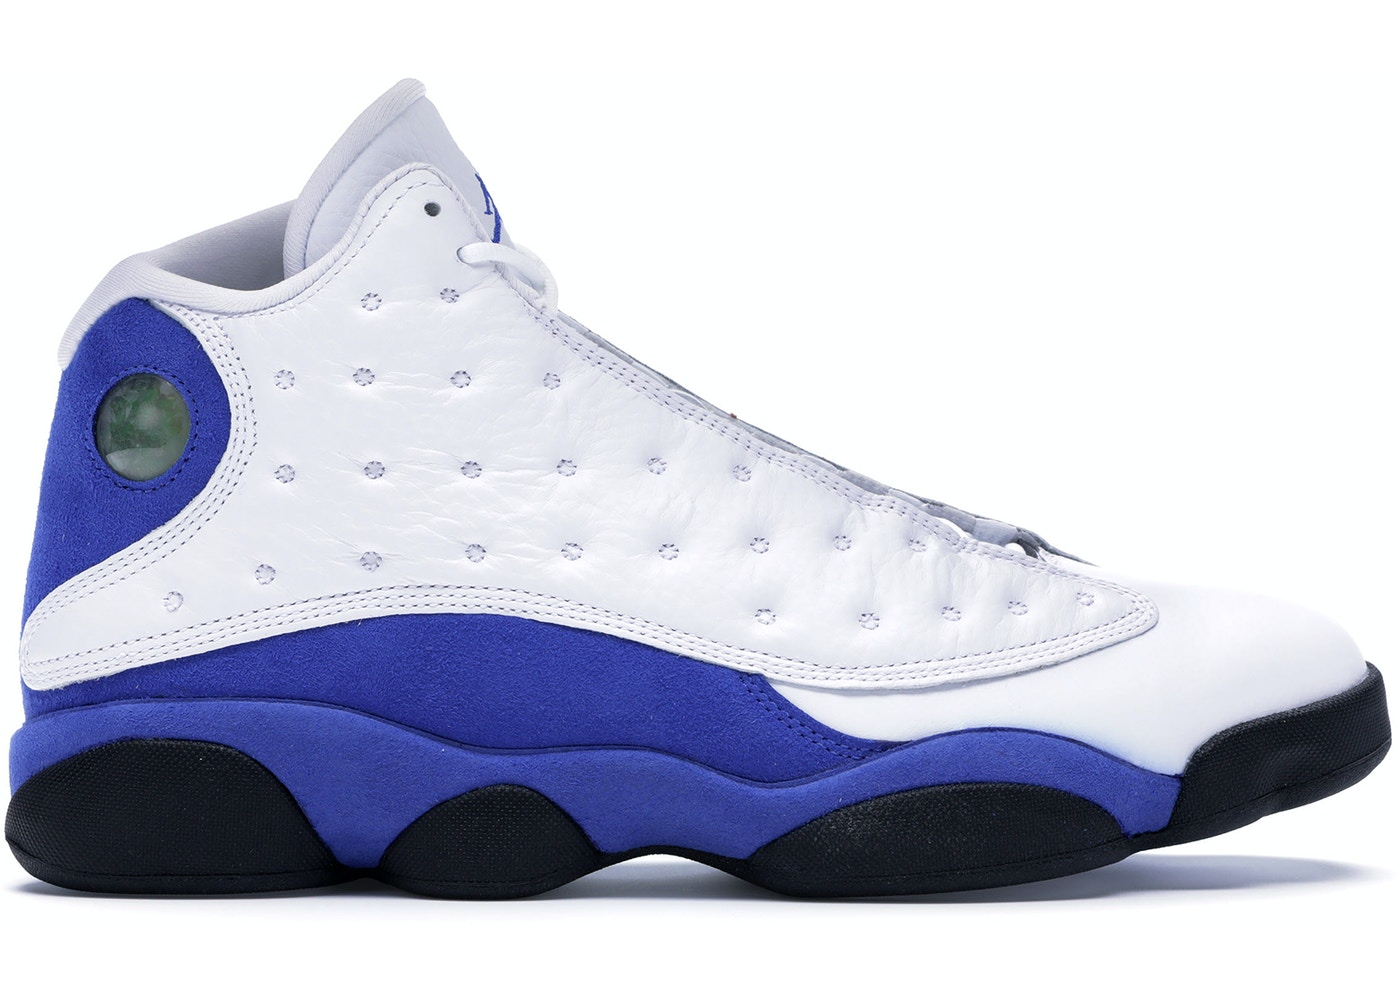 the latest dfa46 bae10 Jordan 13 Retro White Hyper Royal Black - 414571-117